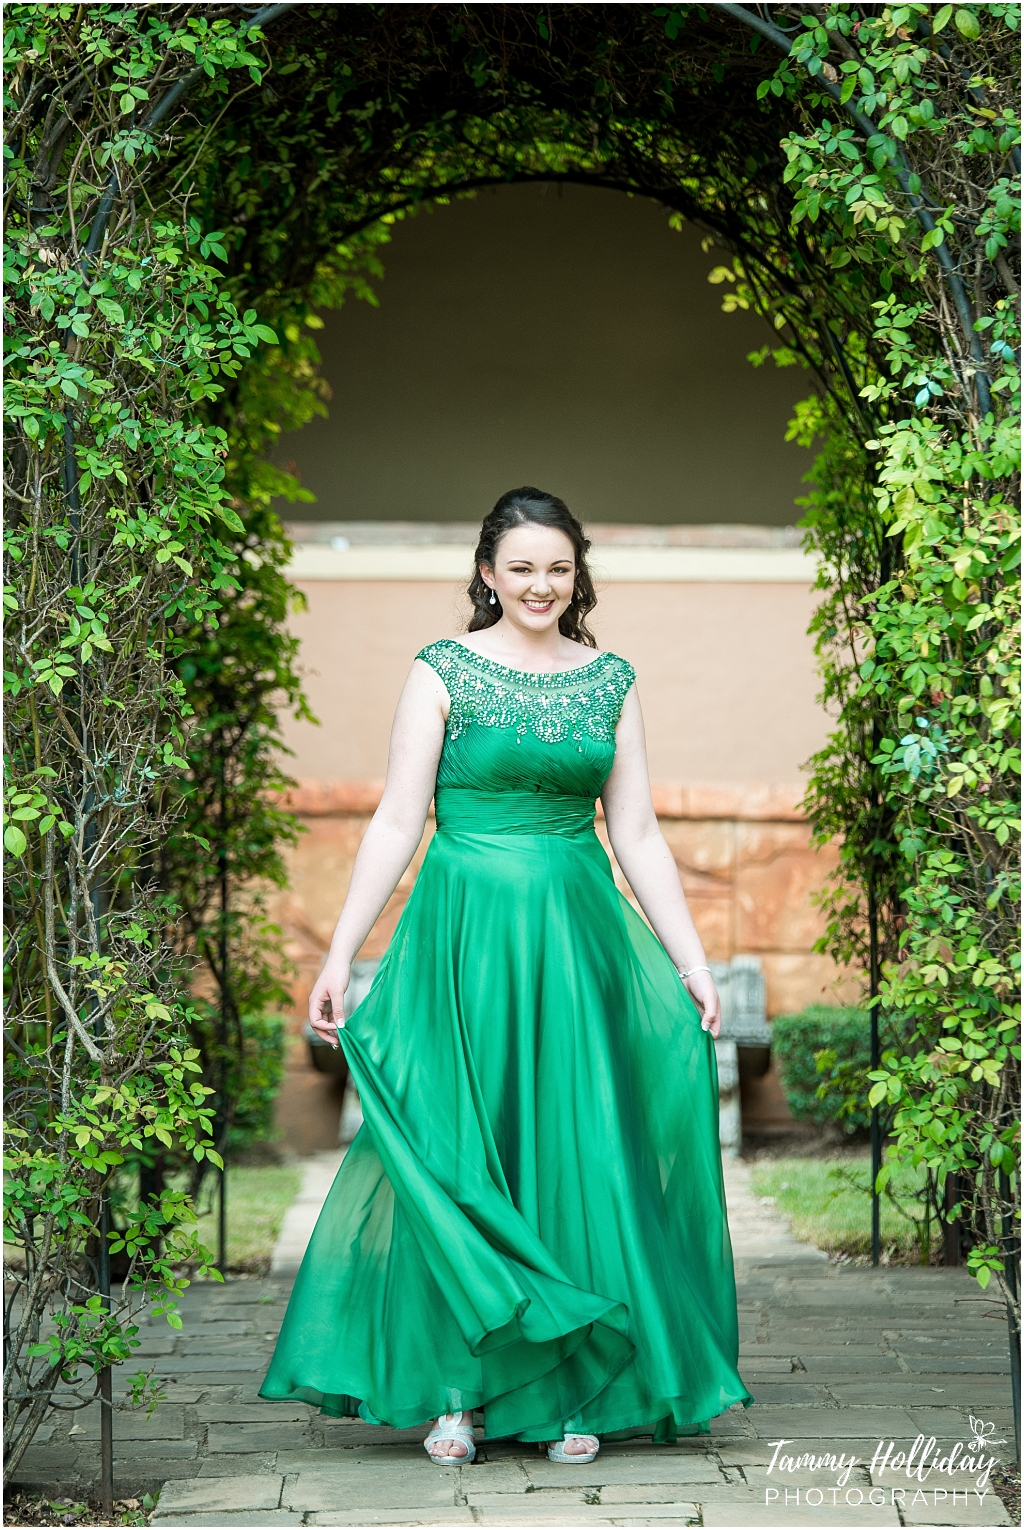 Teenager dressed in green dress standing in greenery arch